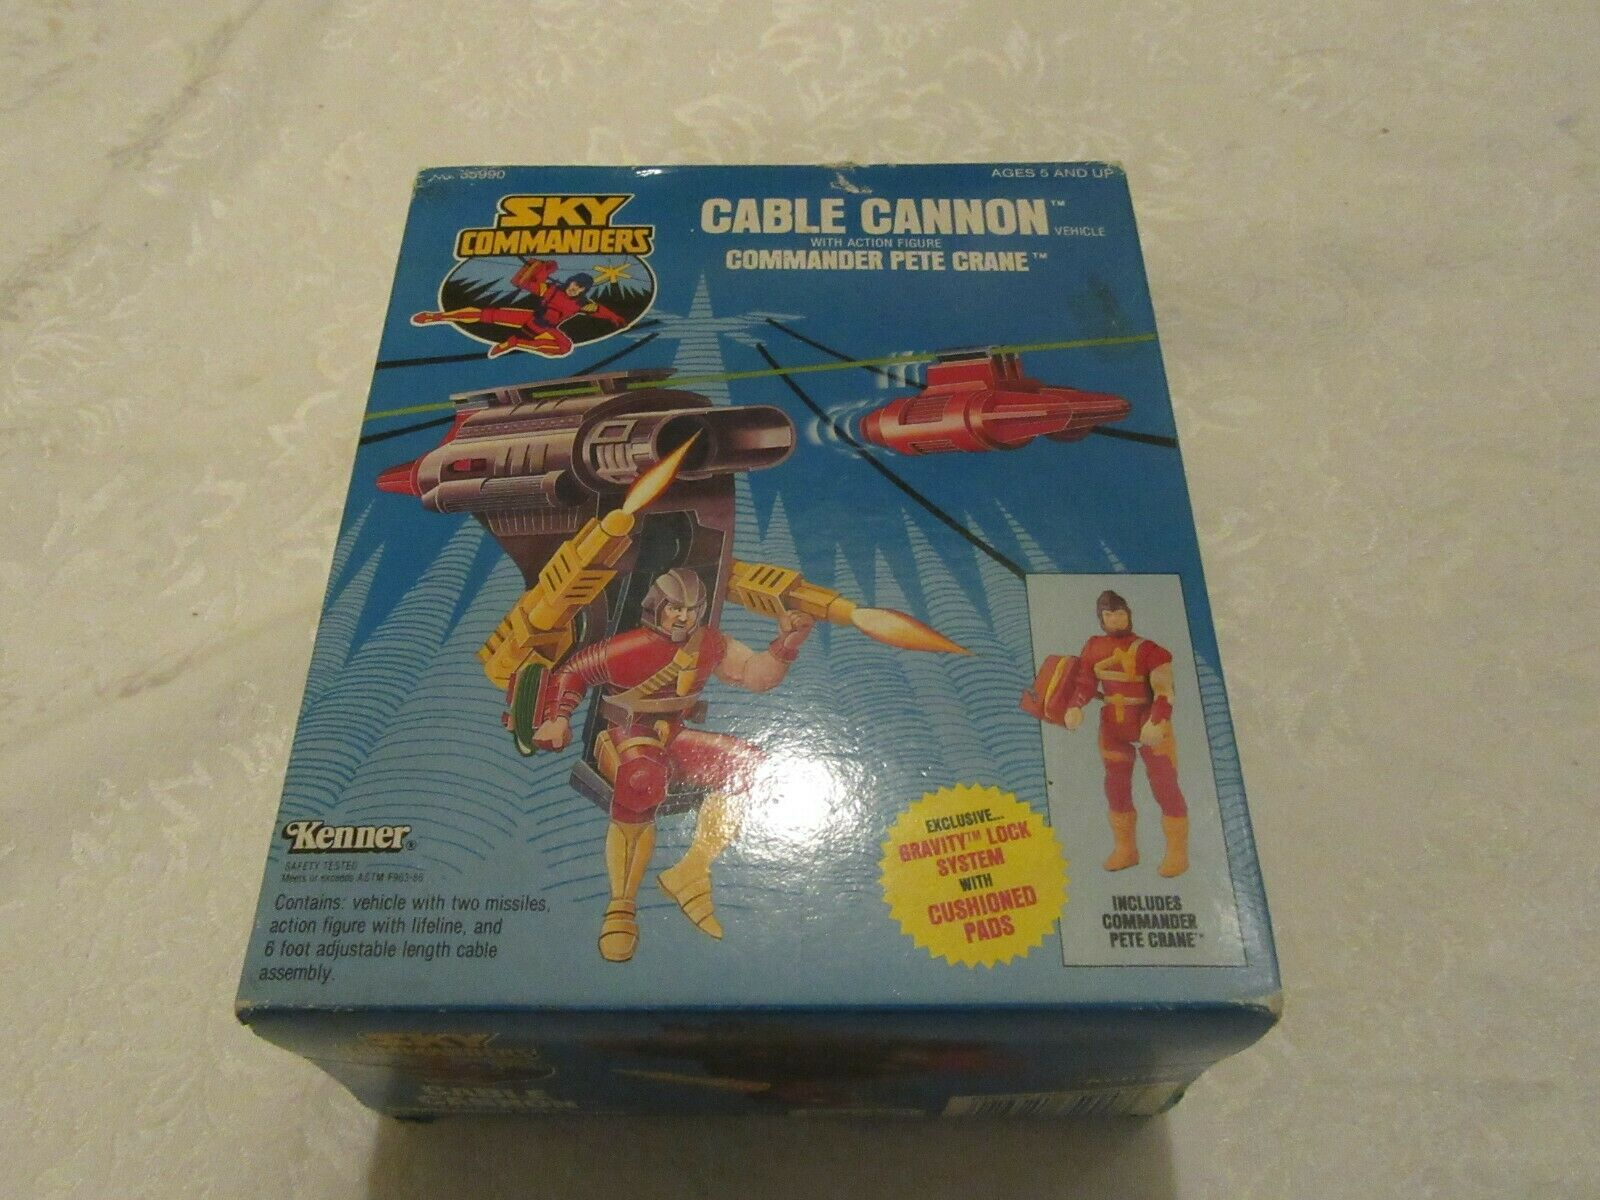 Kenner Sky Commanders Cable Cannon with Commander Pete Crane 1987 Action Figure